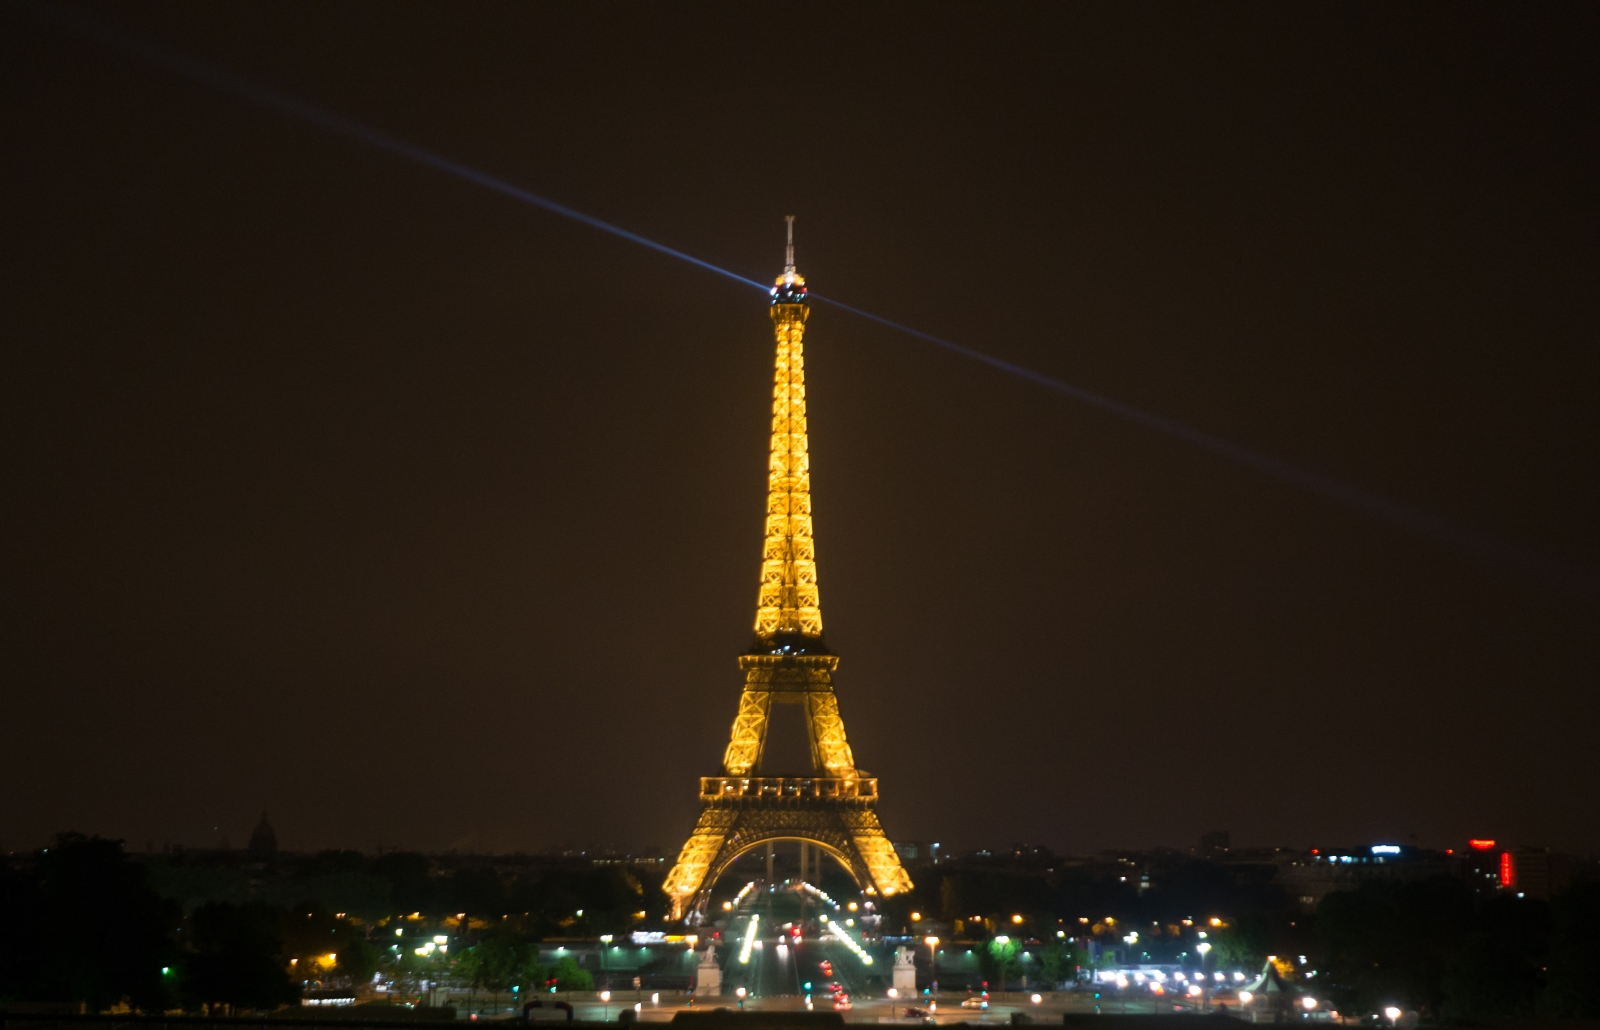 Eiffeltower at night by svenart